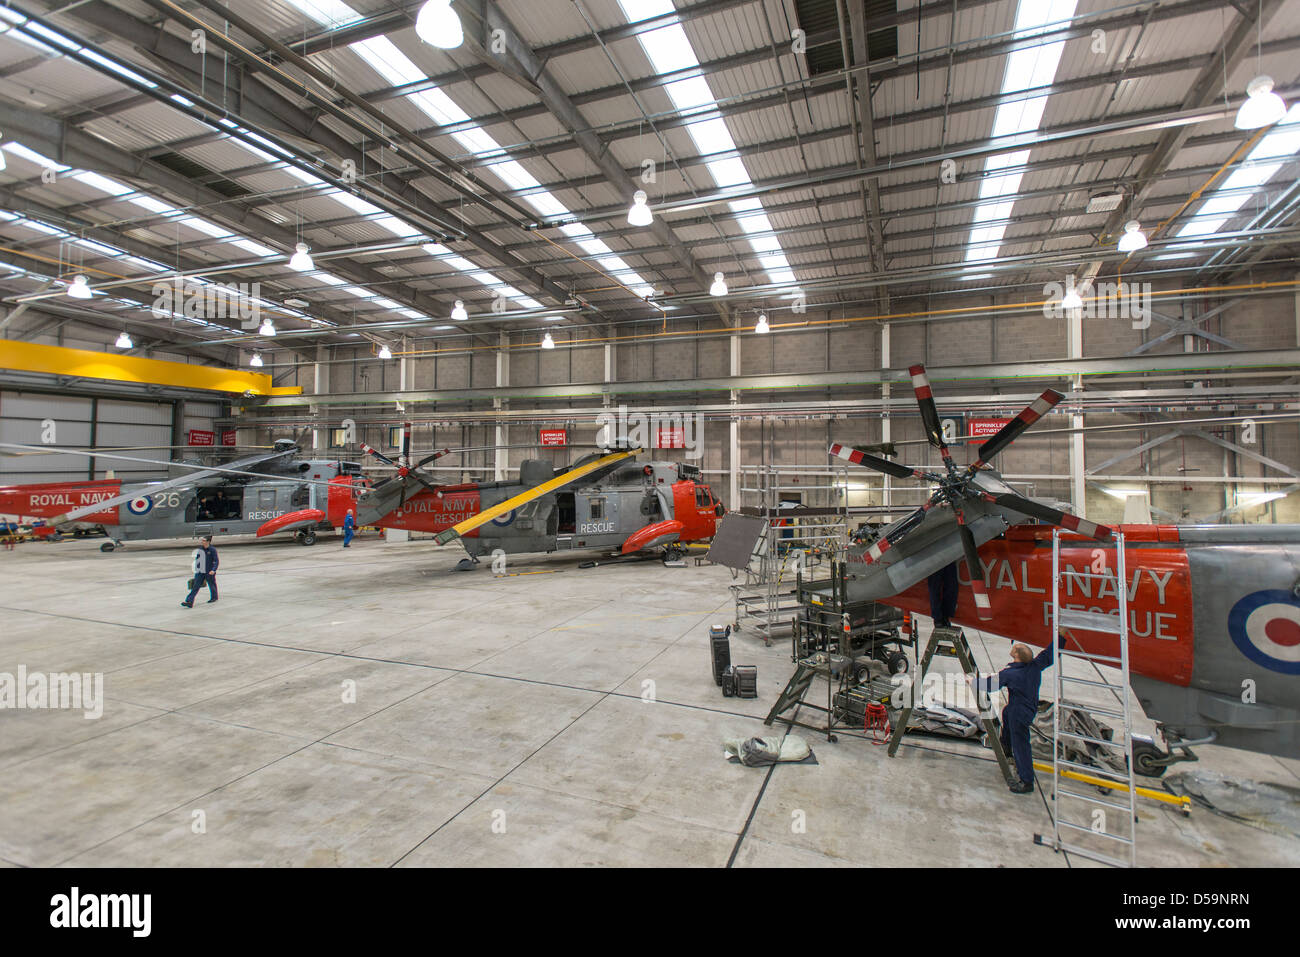 Sea King search and rescue helicopter pictured at RNAS Culdrose, in Cornwall, UK - Stock Image